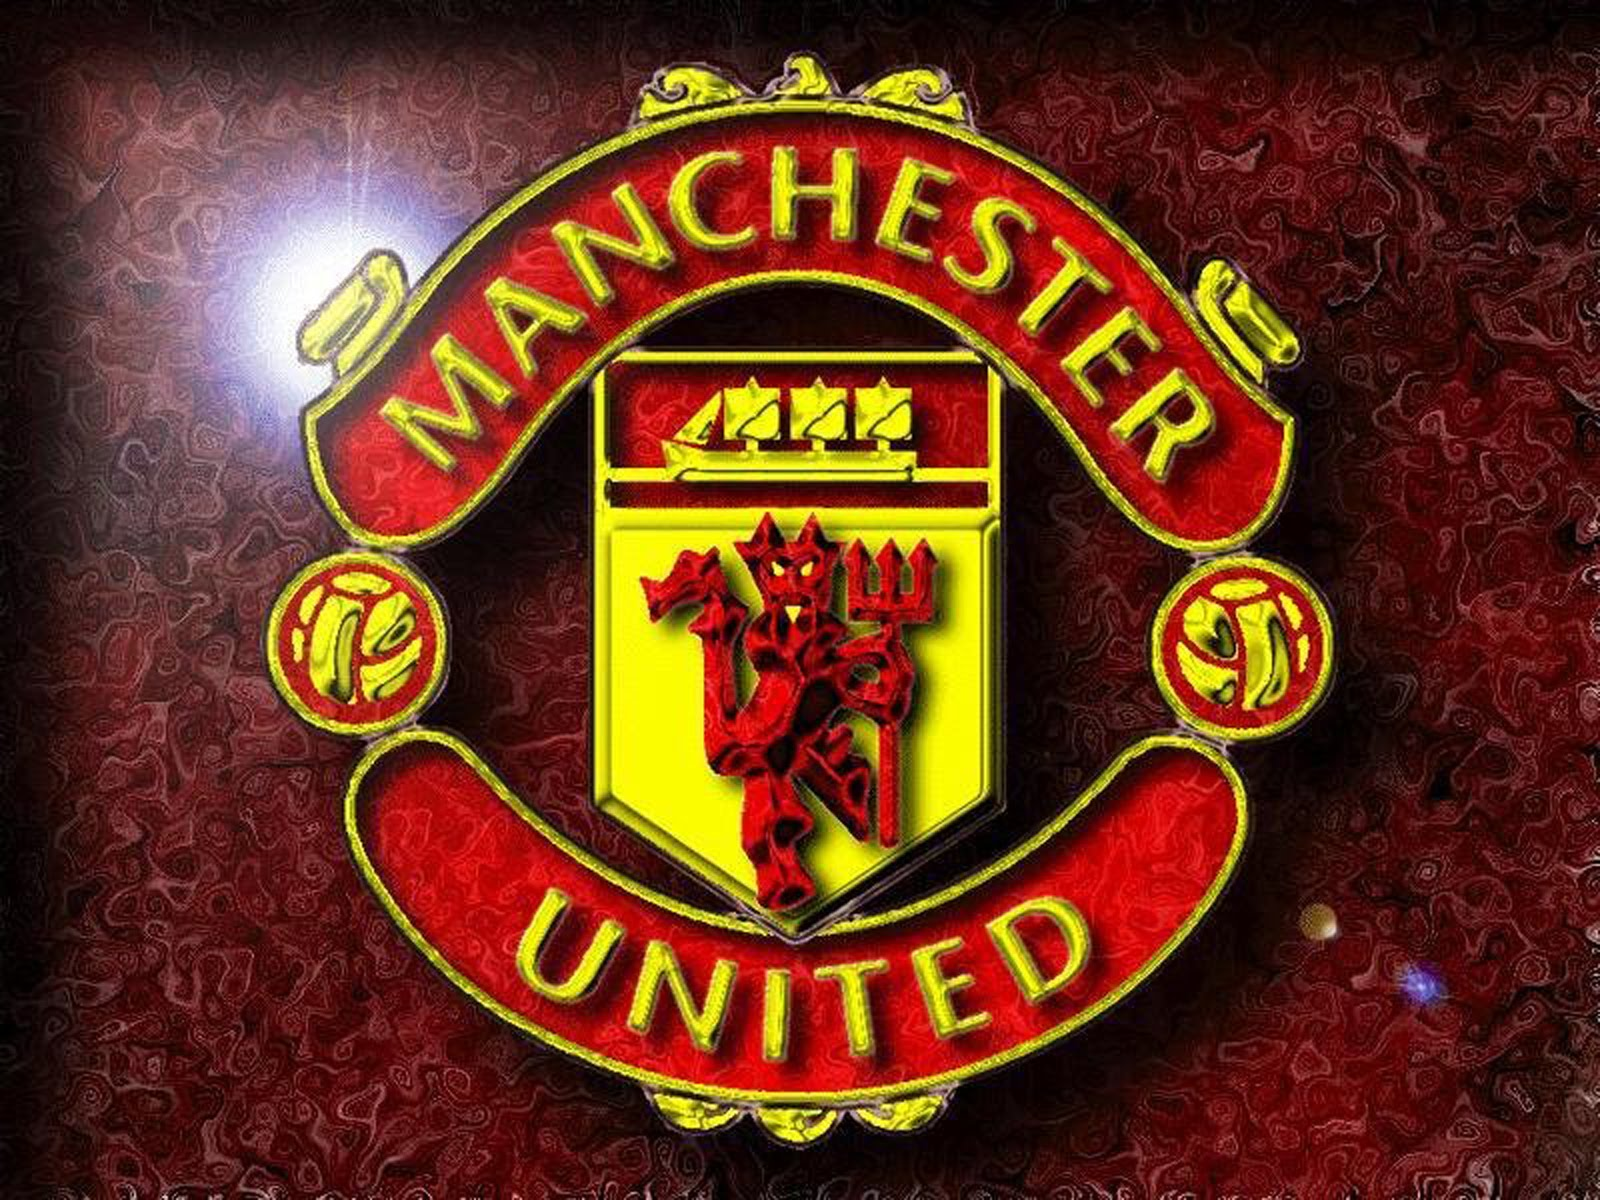 MANCHESTER UNITED (RED DEVILS) 2012